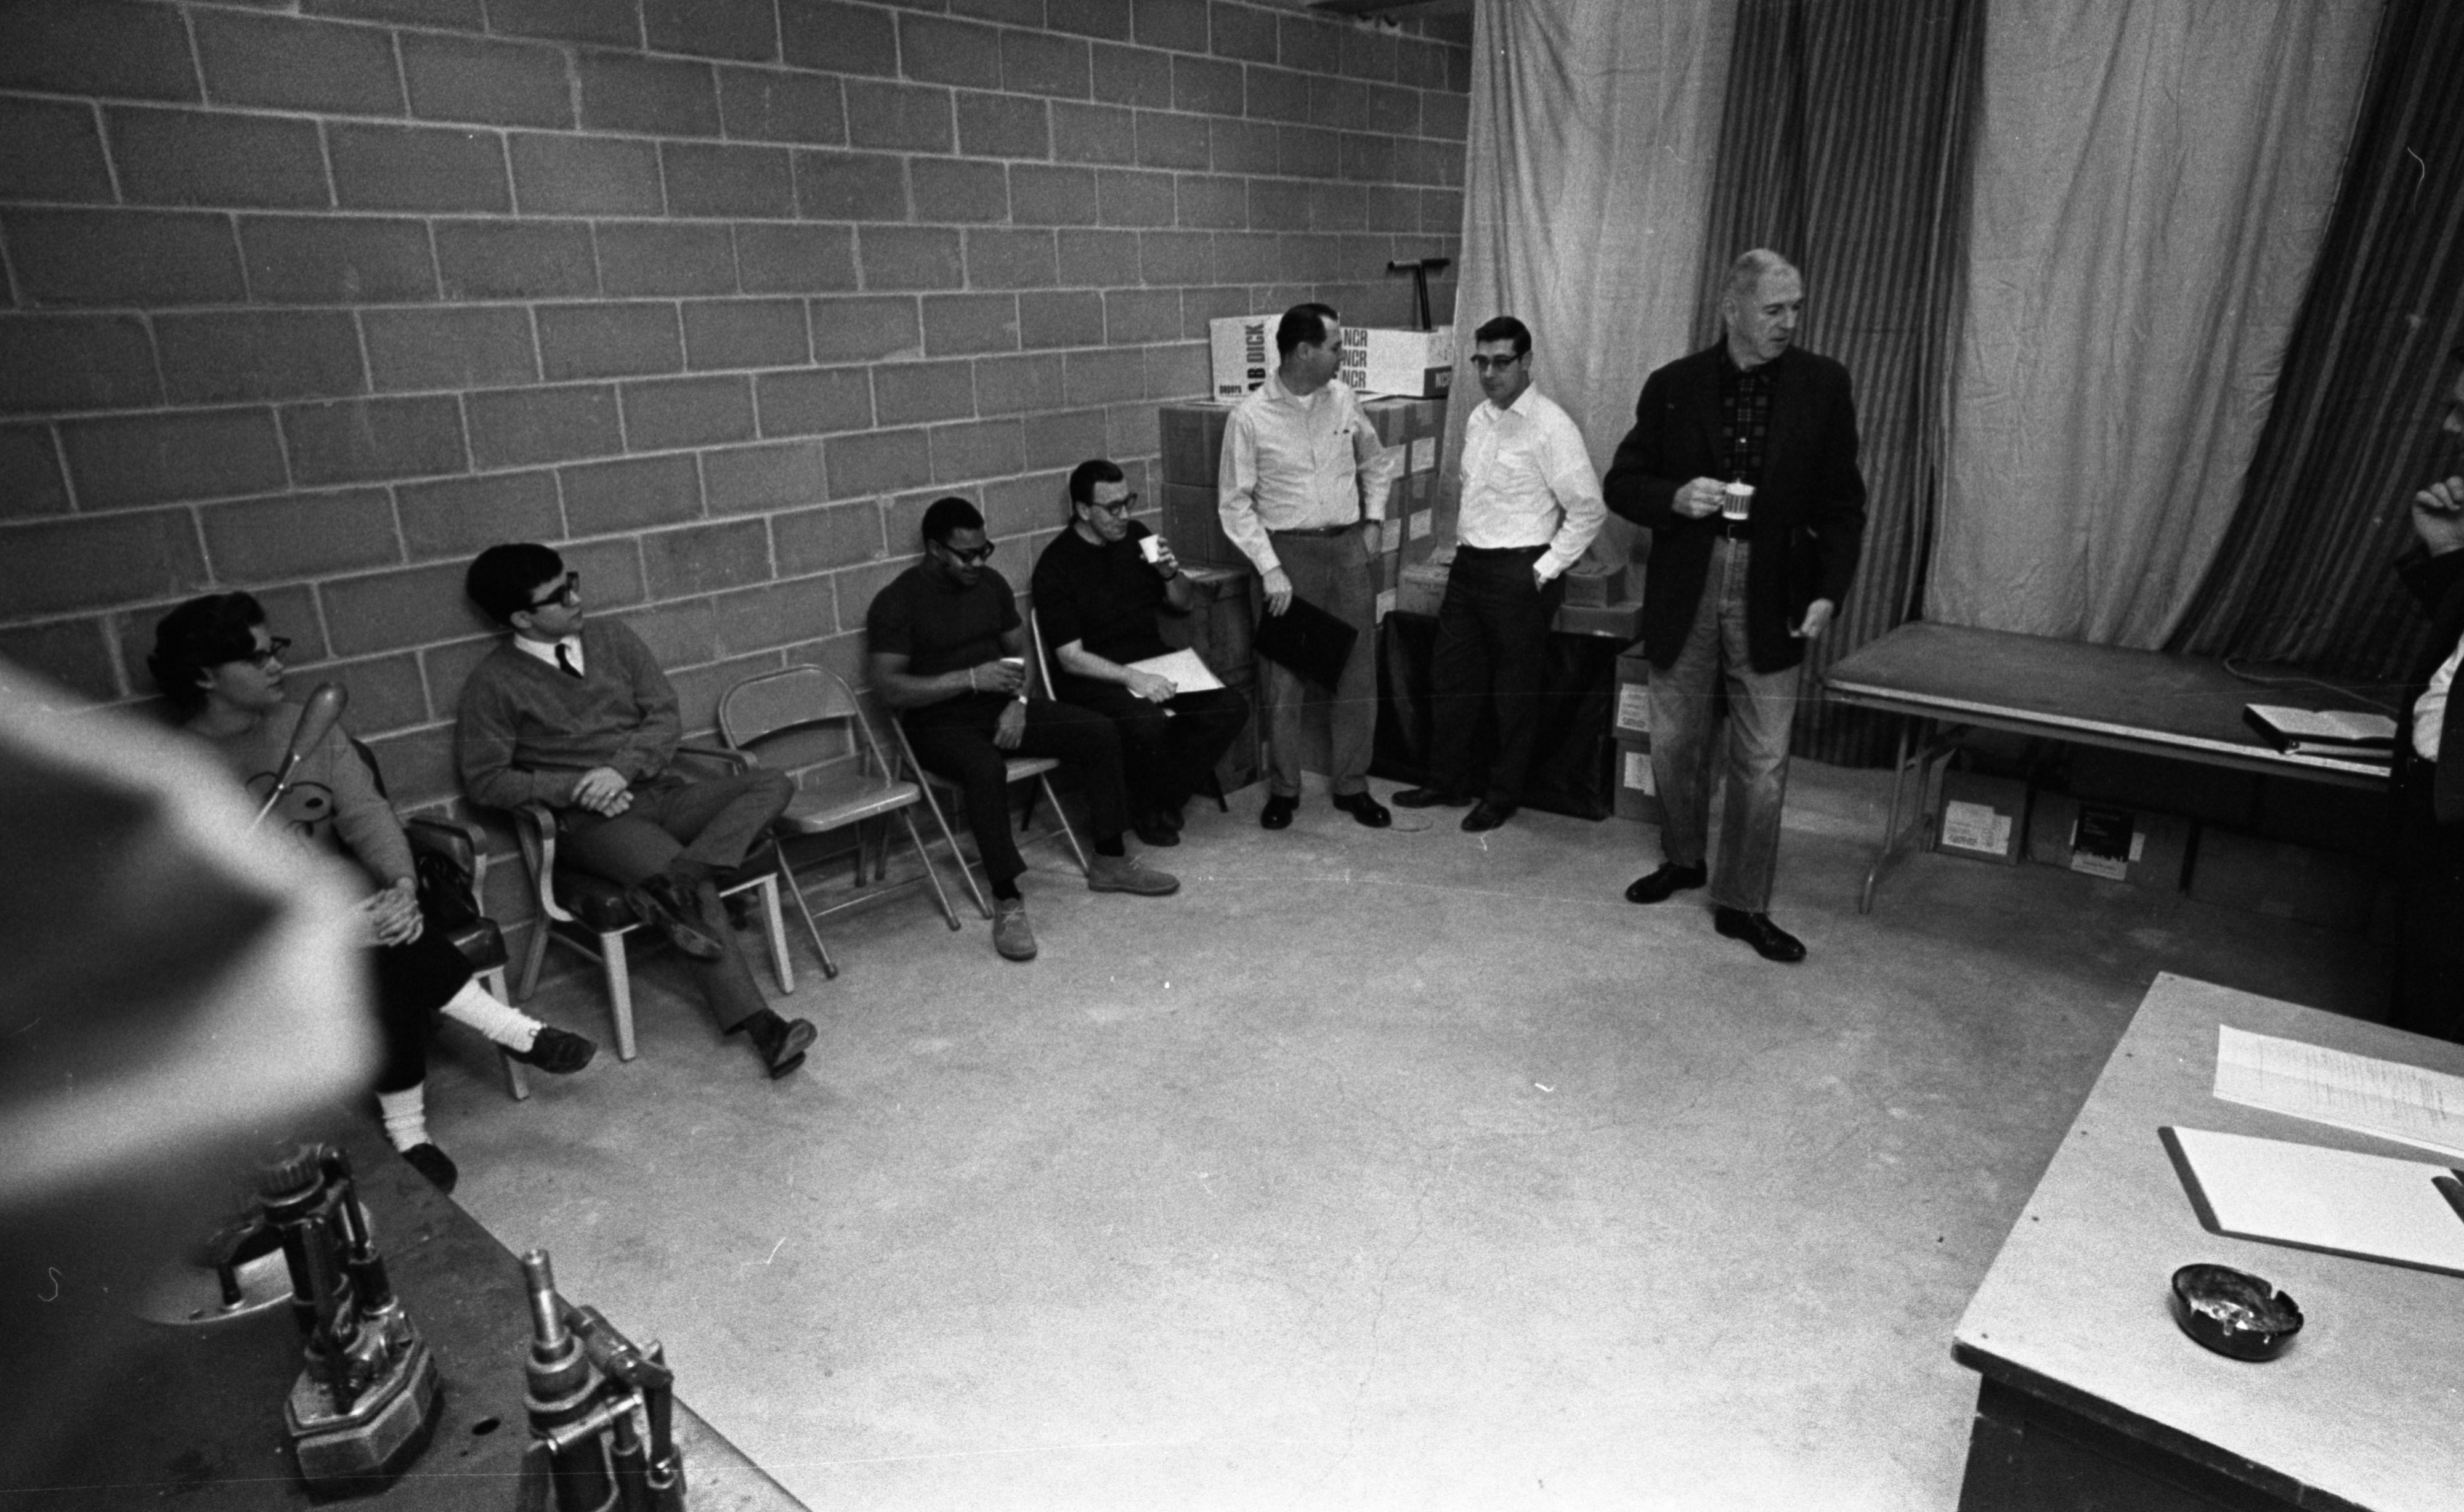 Ann Arbor News reporter Dennis Chase (left) joins group in fallout shelter for civil defense test, February 1969 image